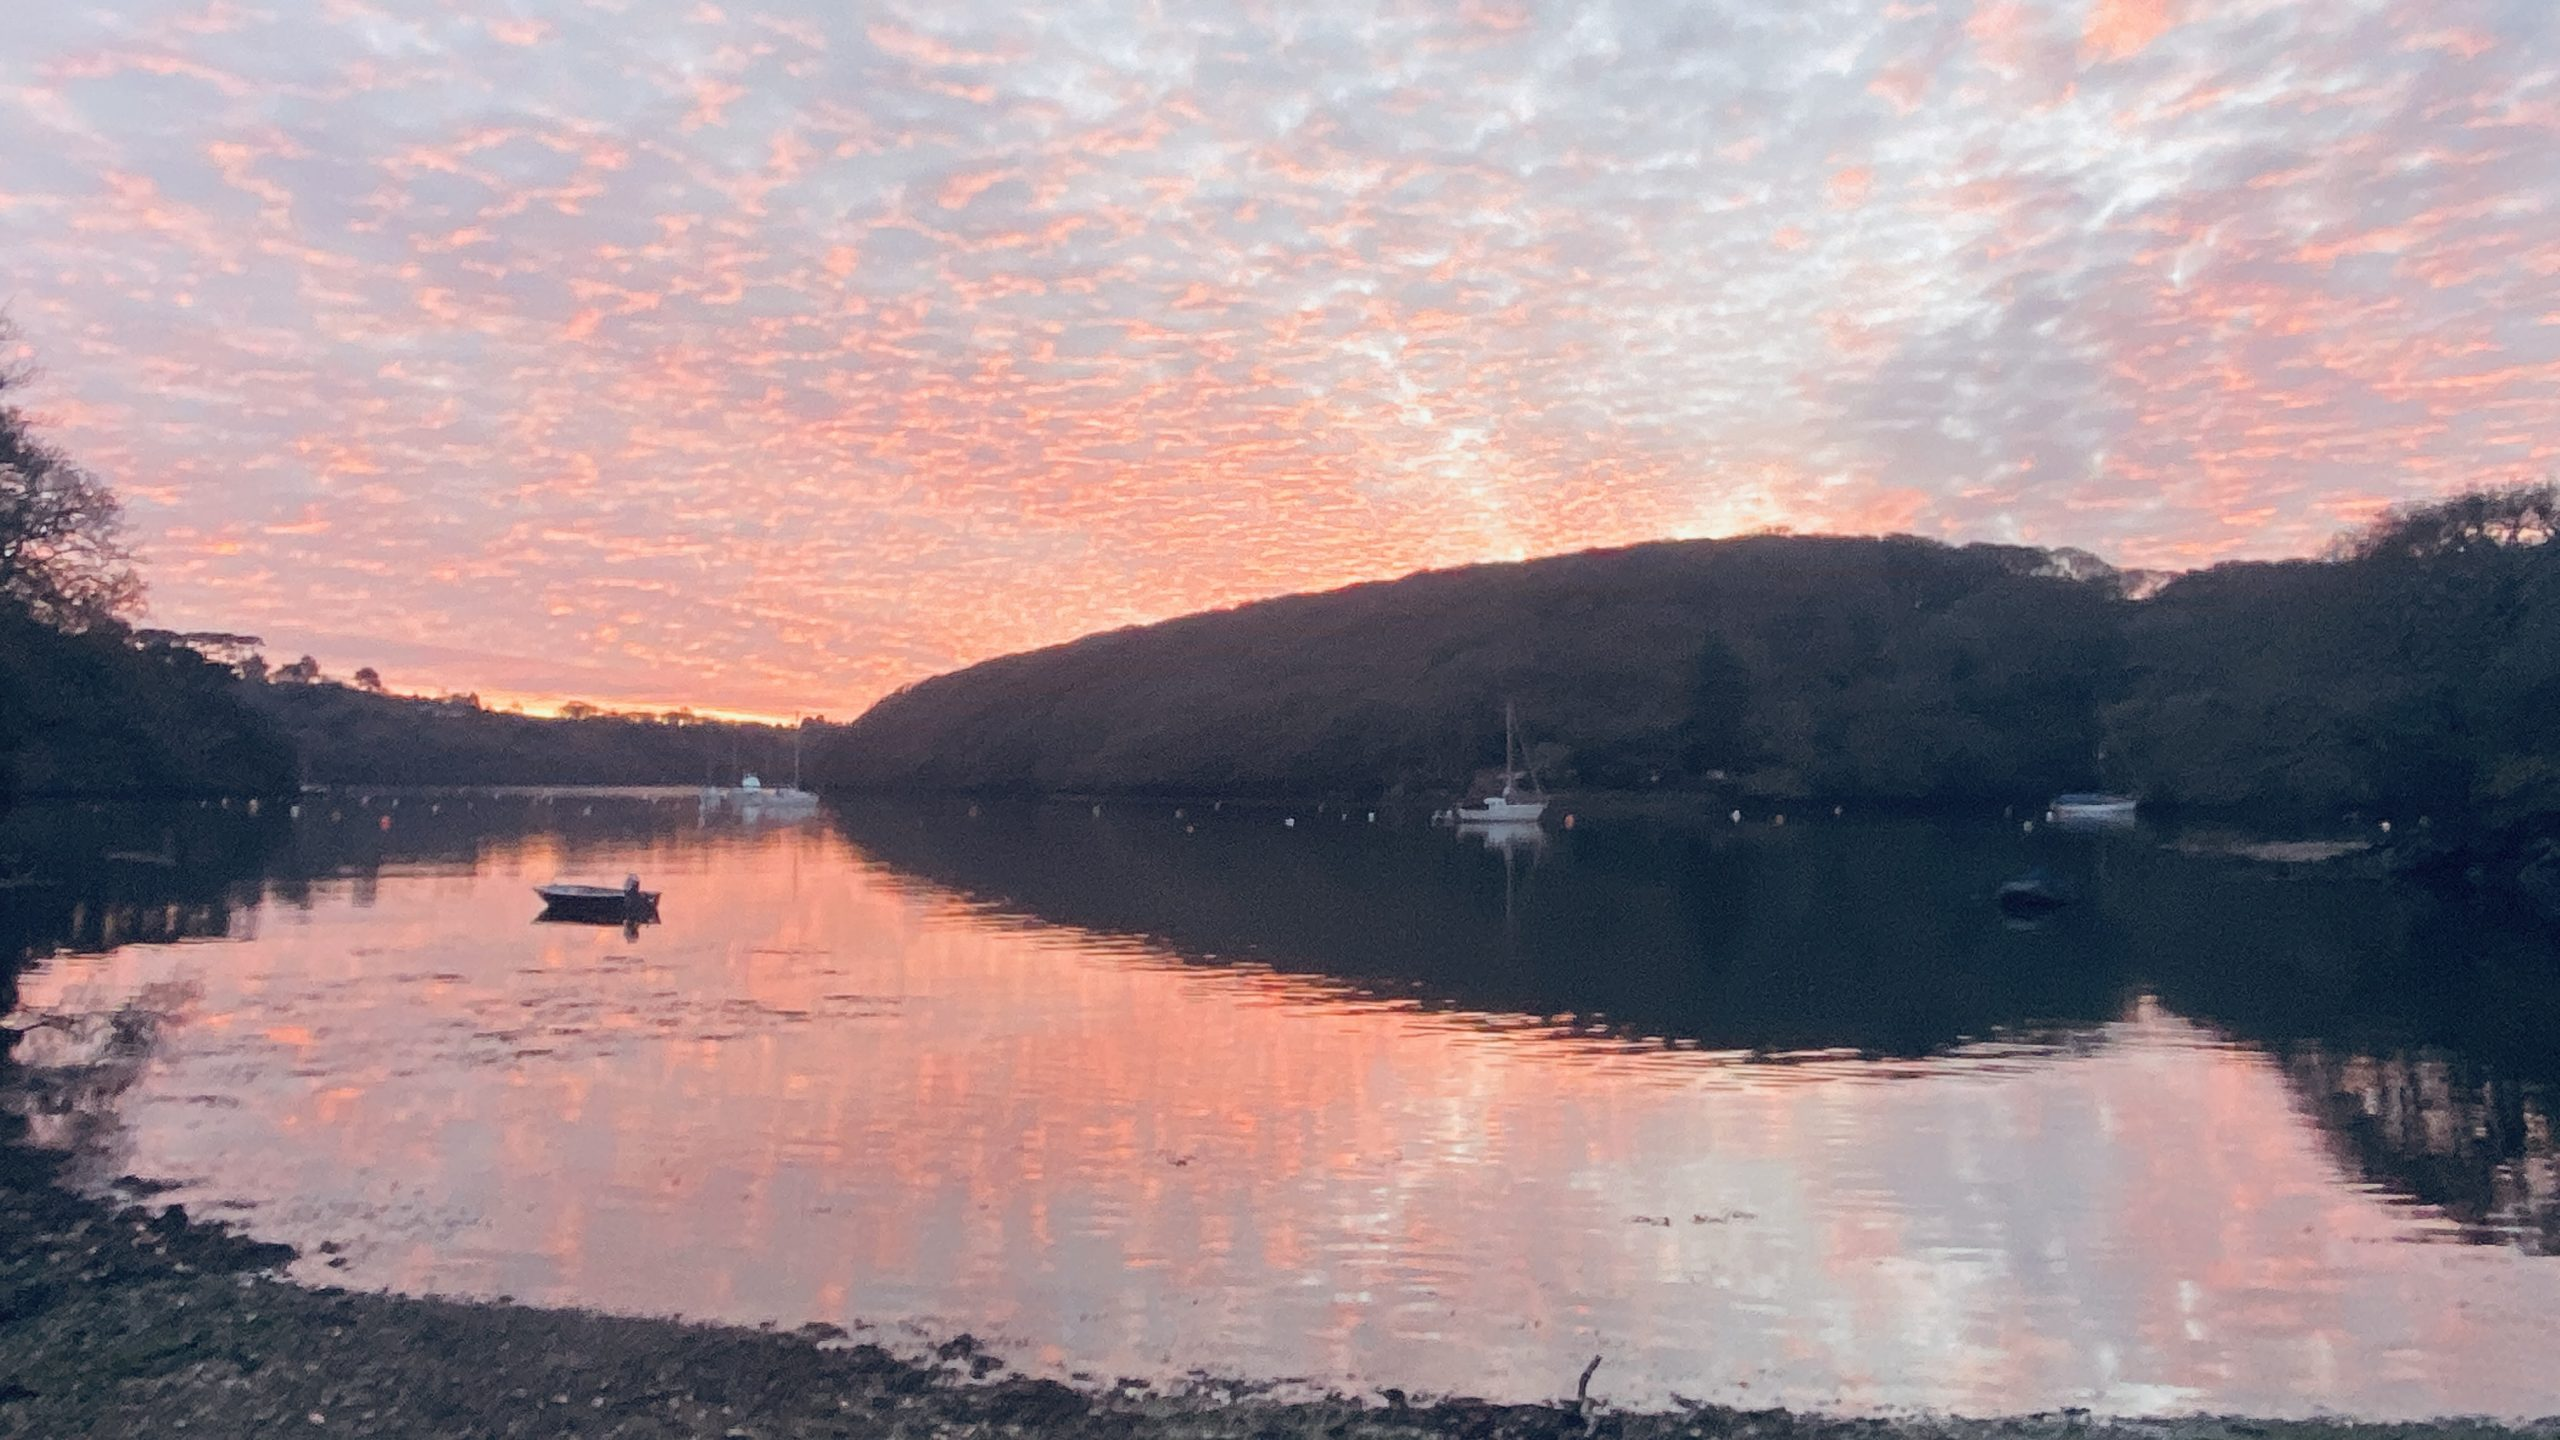 Helford River Cruises will be at The Farmers Market this December in Truro…